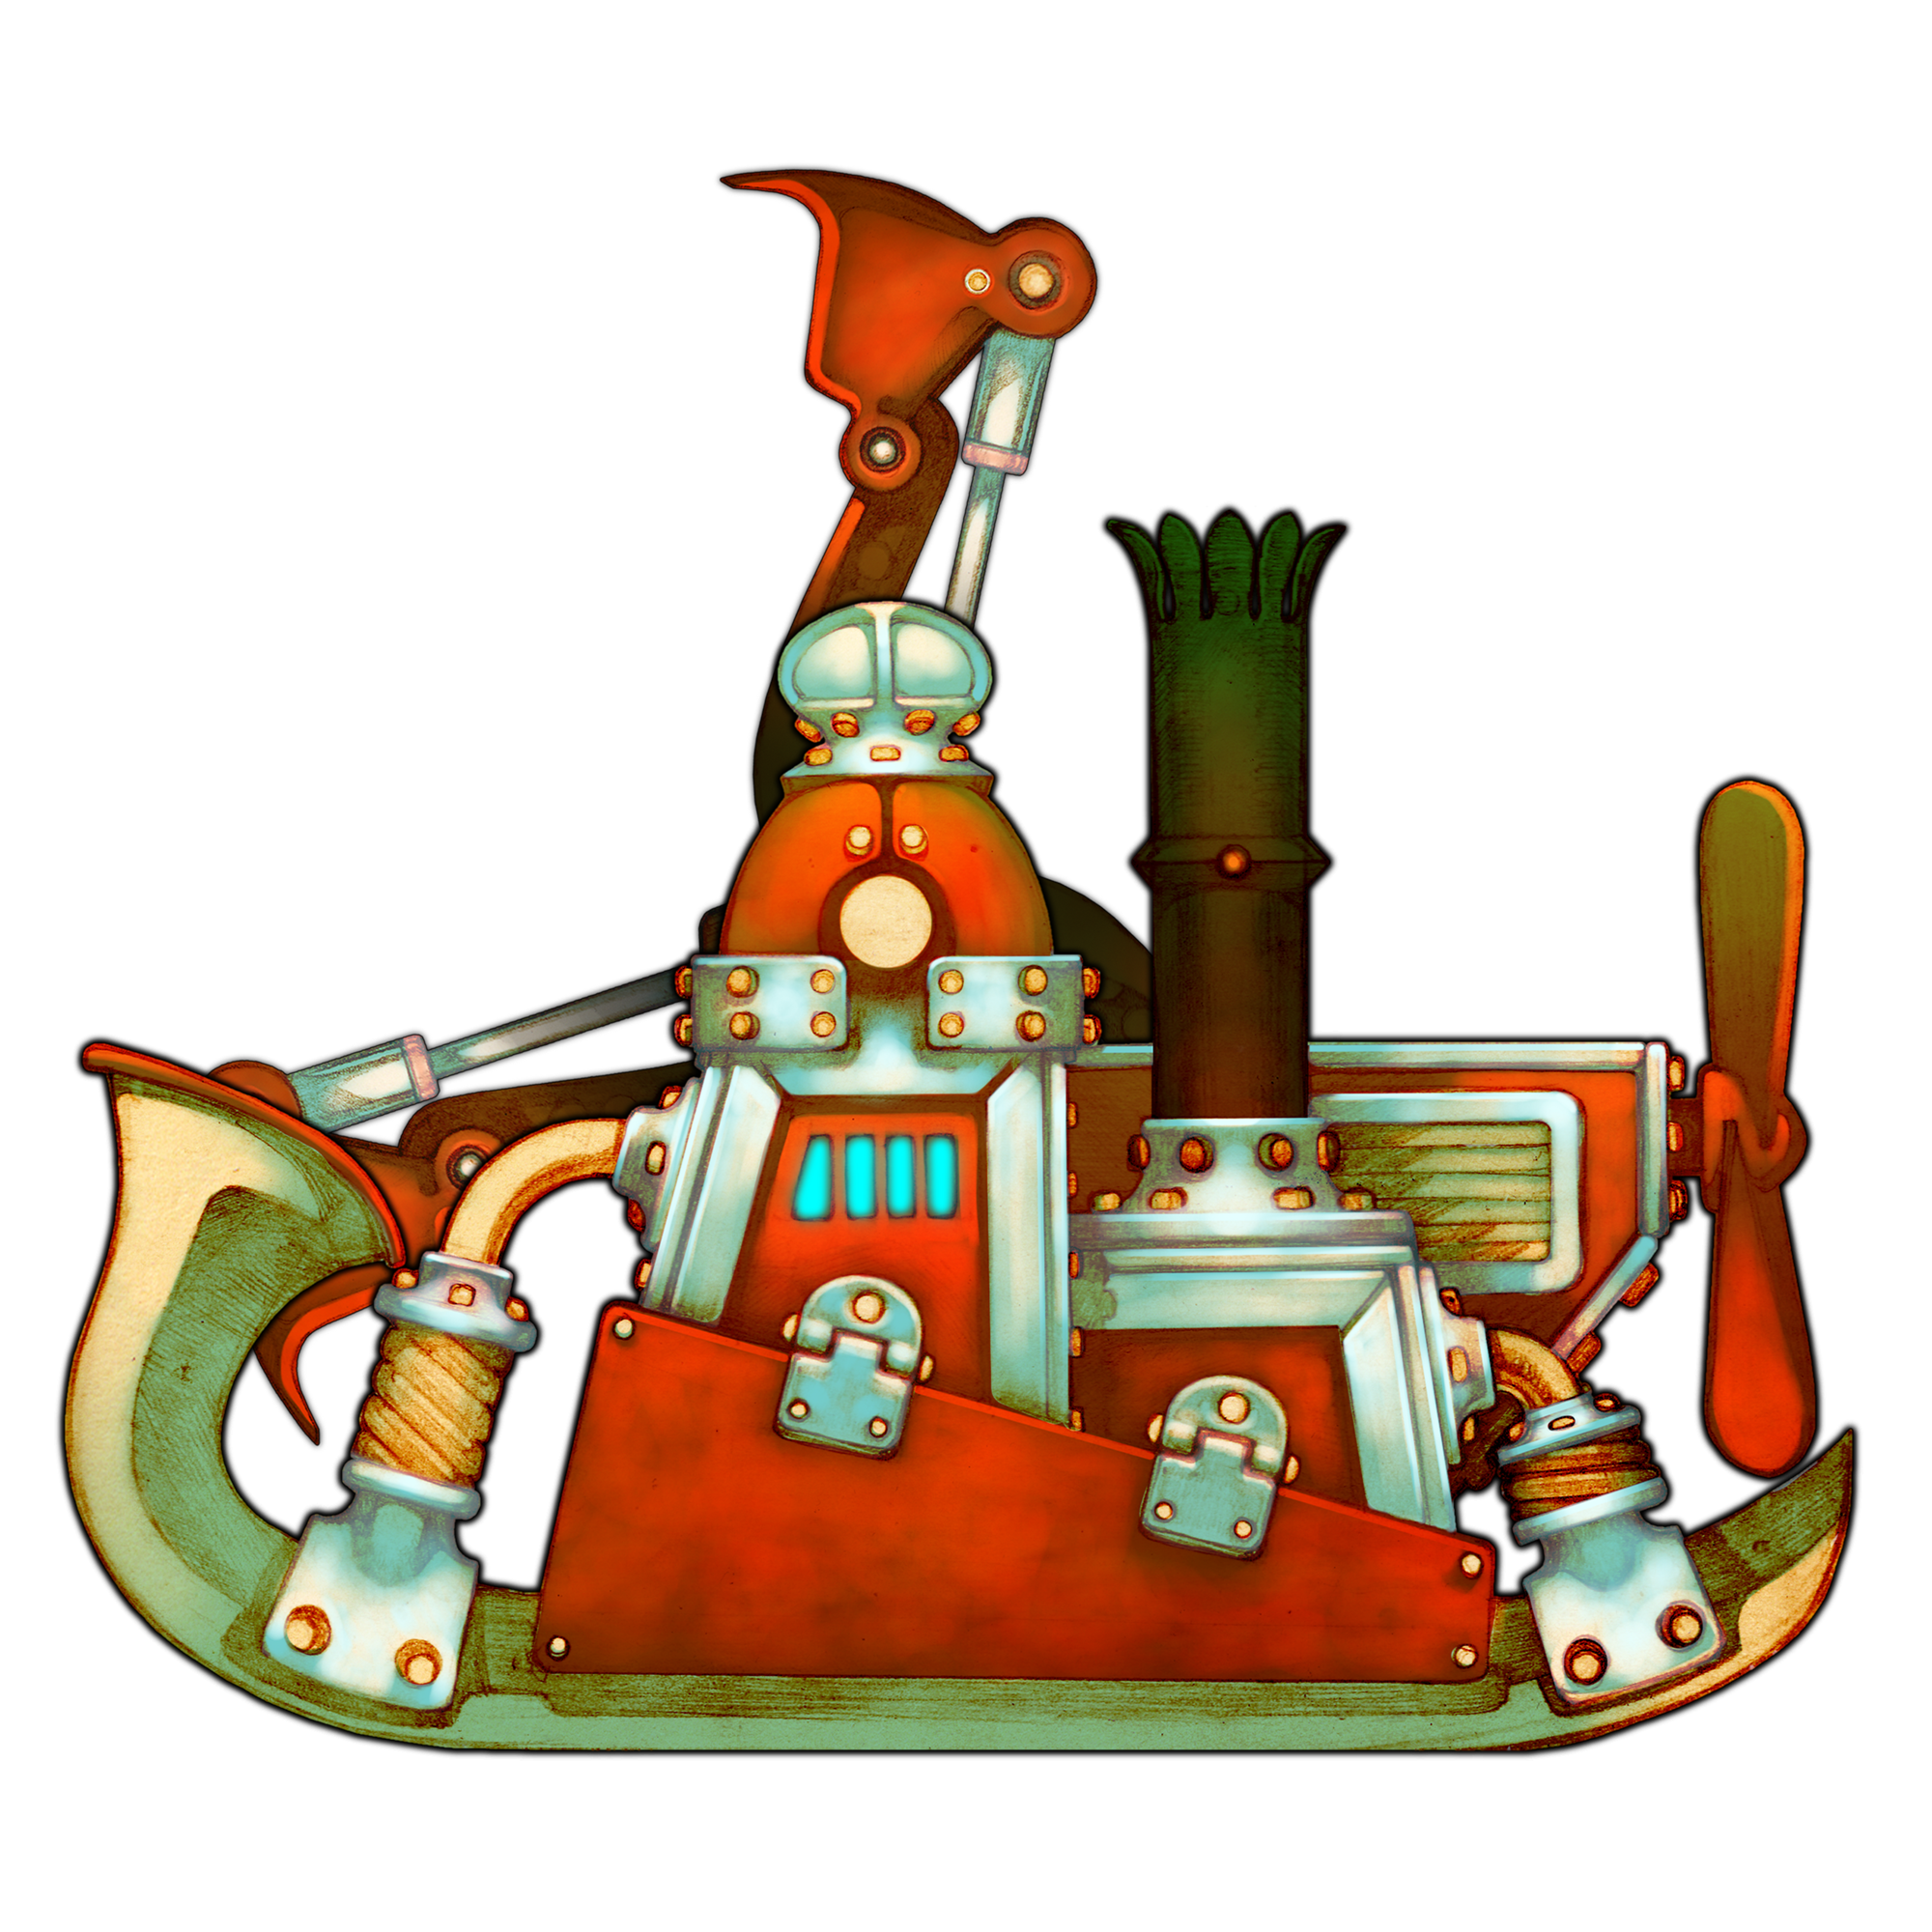 Steampunk clipart invention discovery. Gremlins inc appid steam